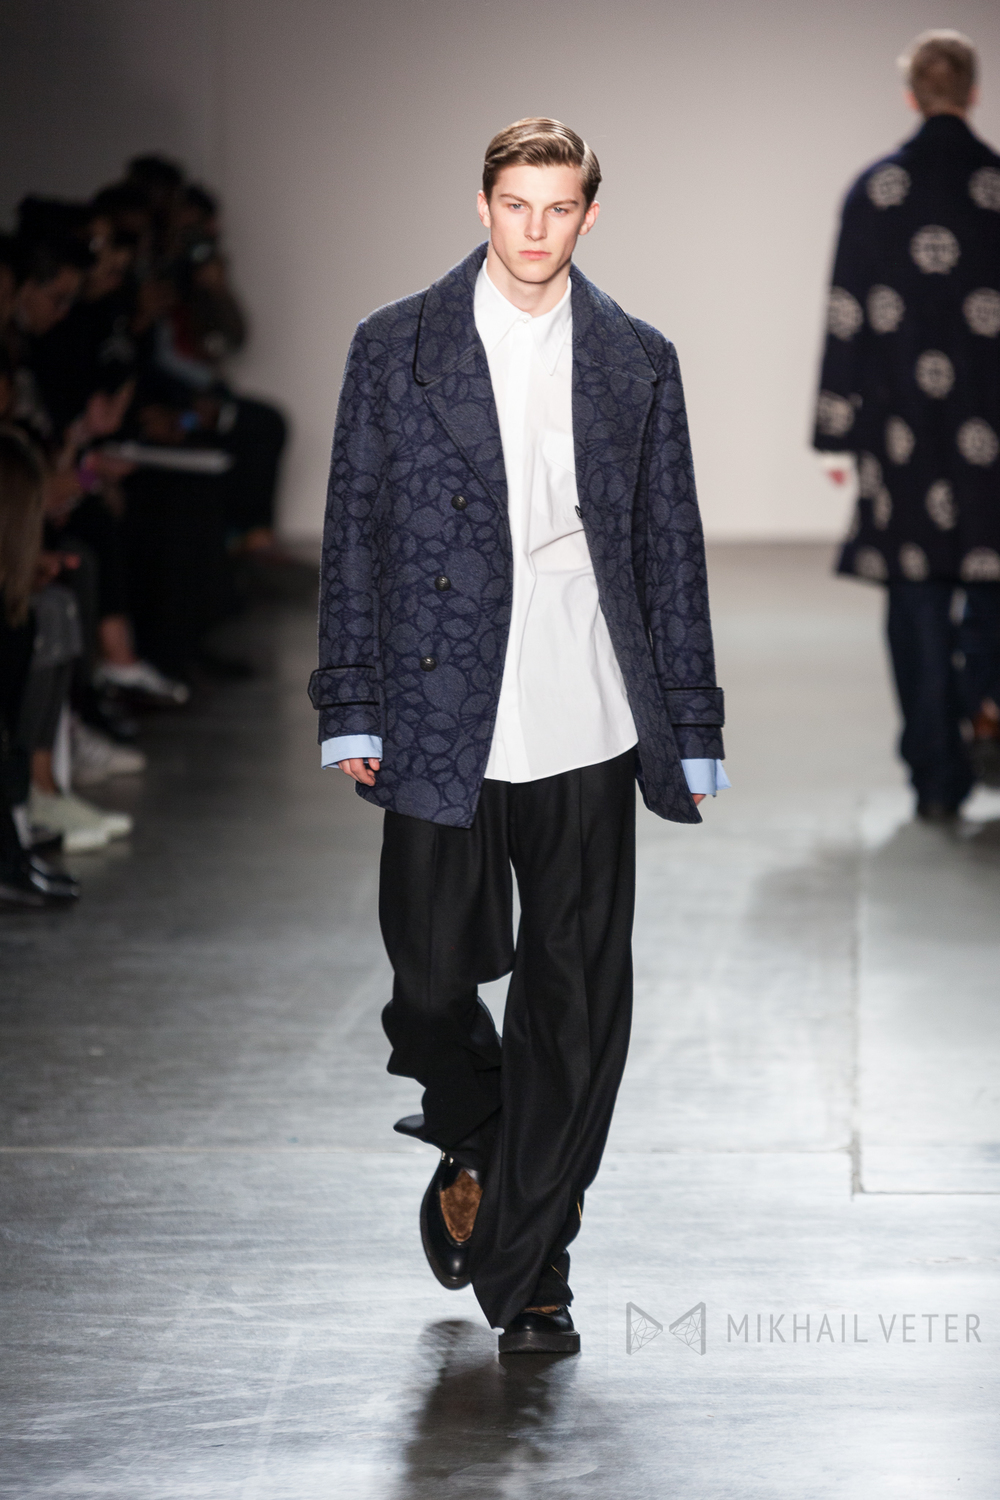 Ordinary people | New York Fashion Week Men's Fall 2016